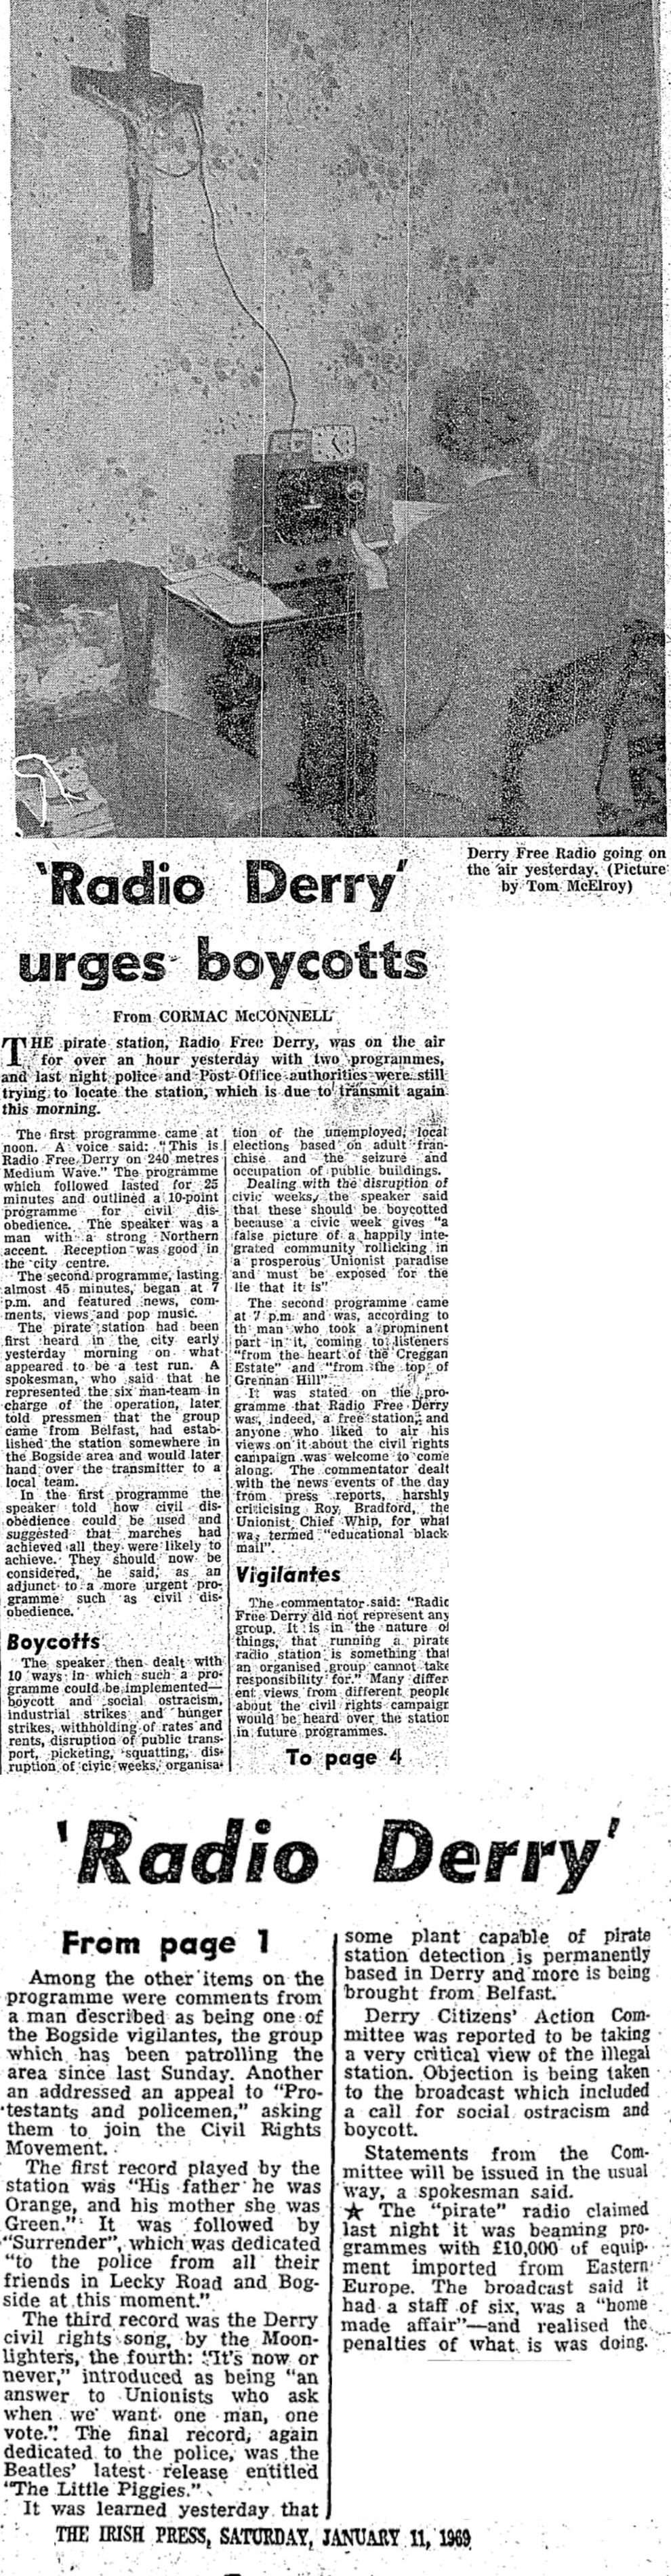 Radio Derry Urges Boycotts was a headline from The Irish Press from January 11th 1969